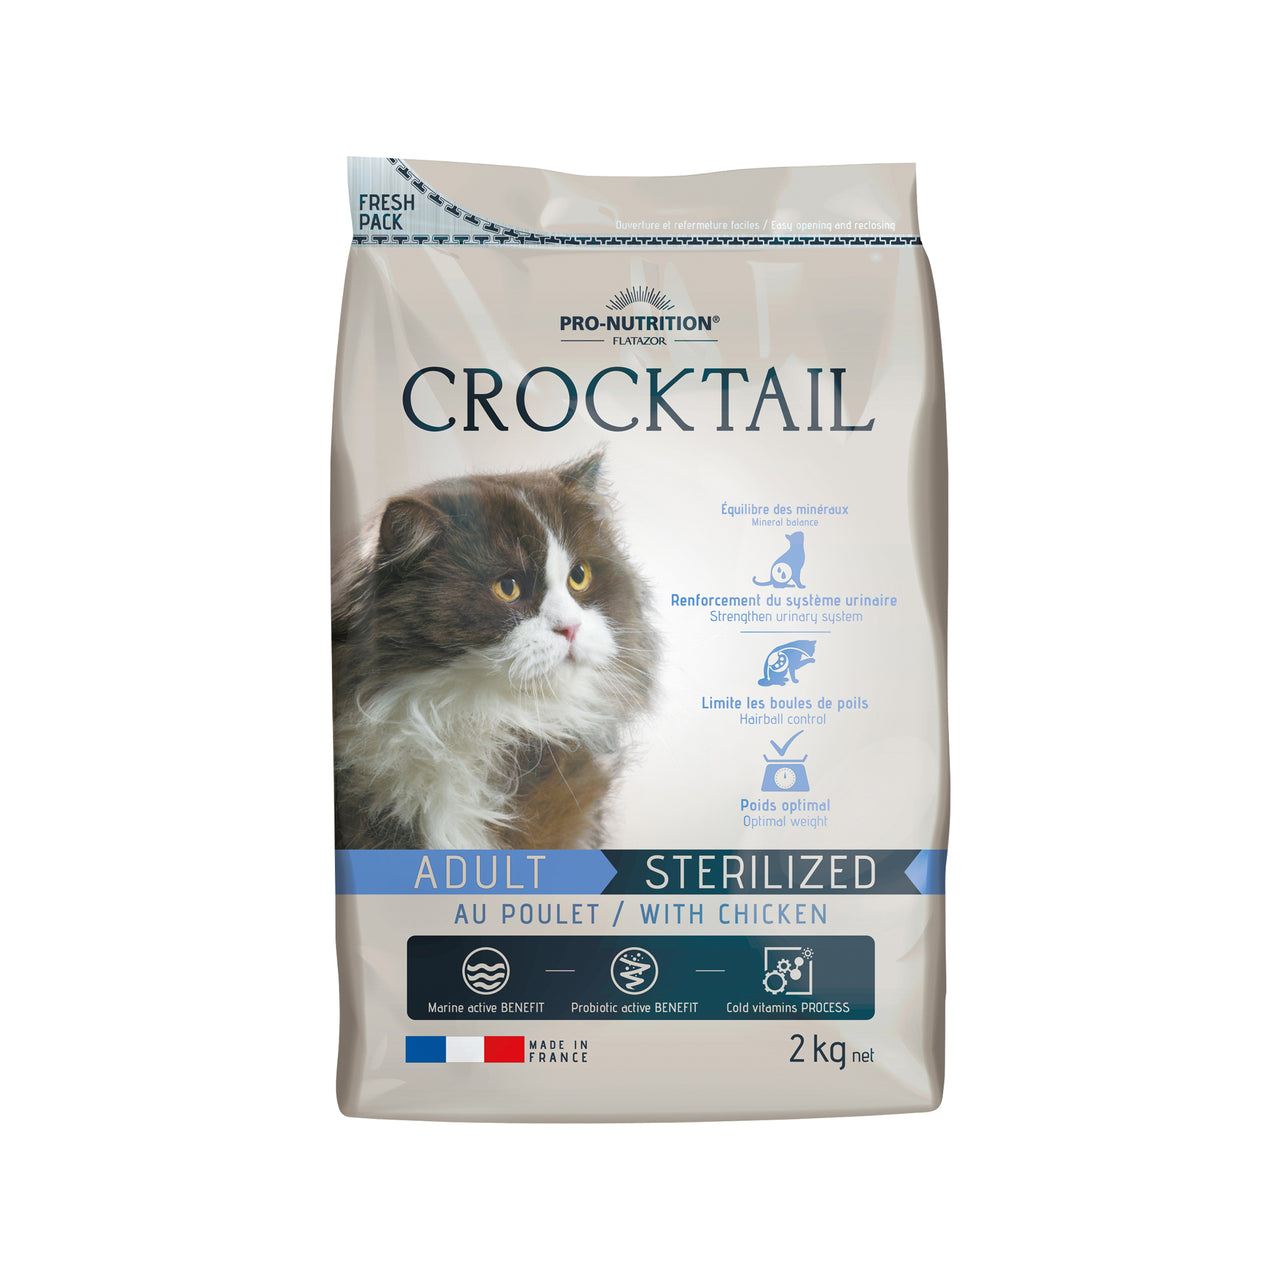 Crocktail Adult Sterilized Chicken 2kg